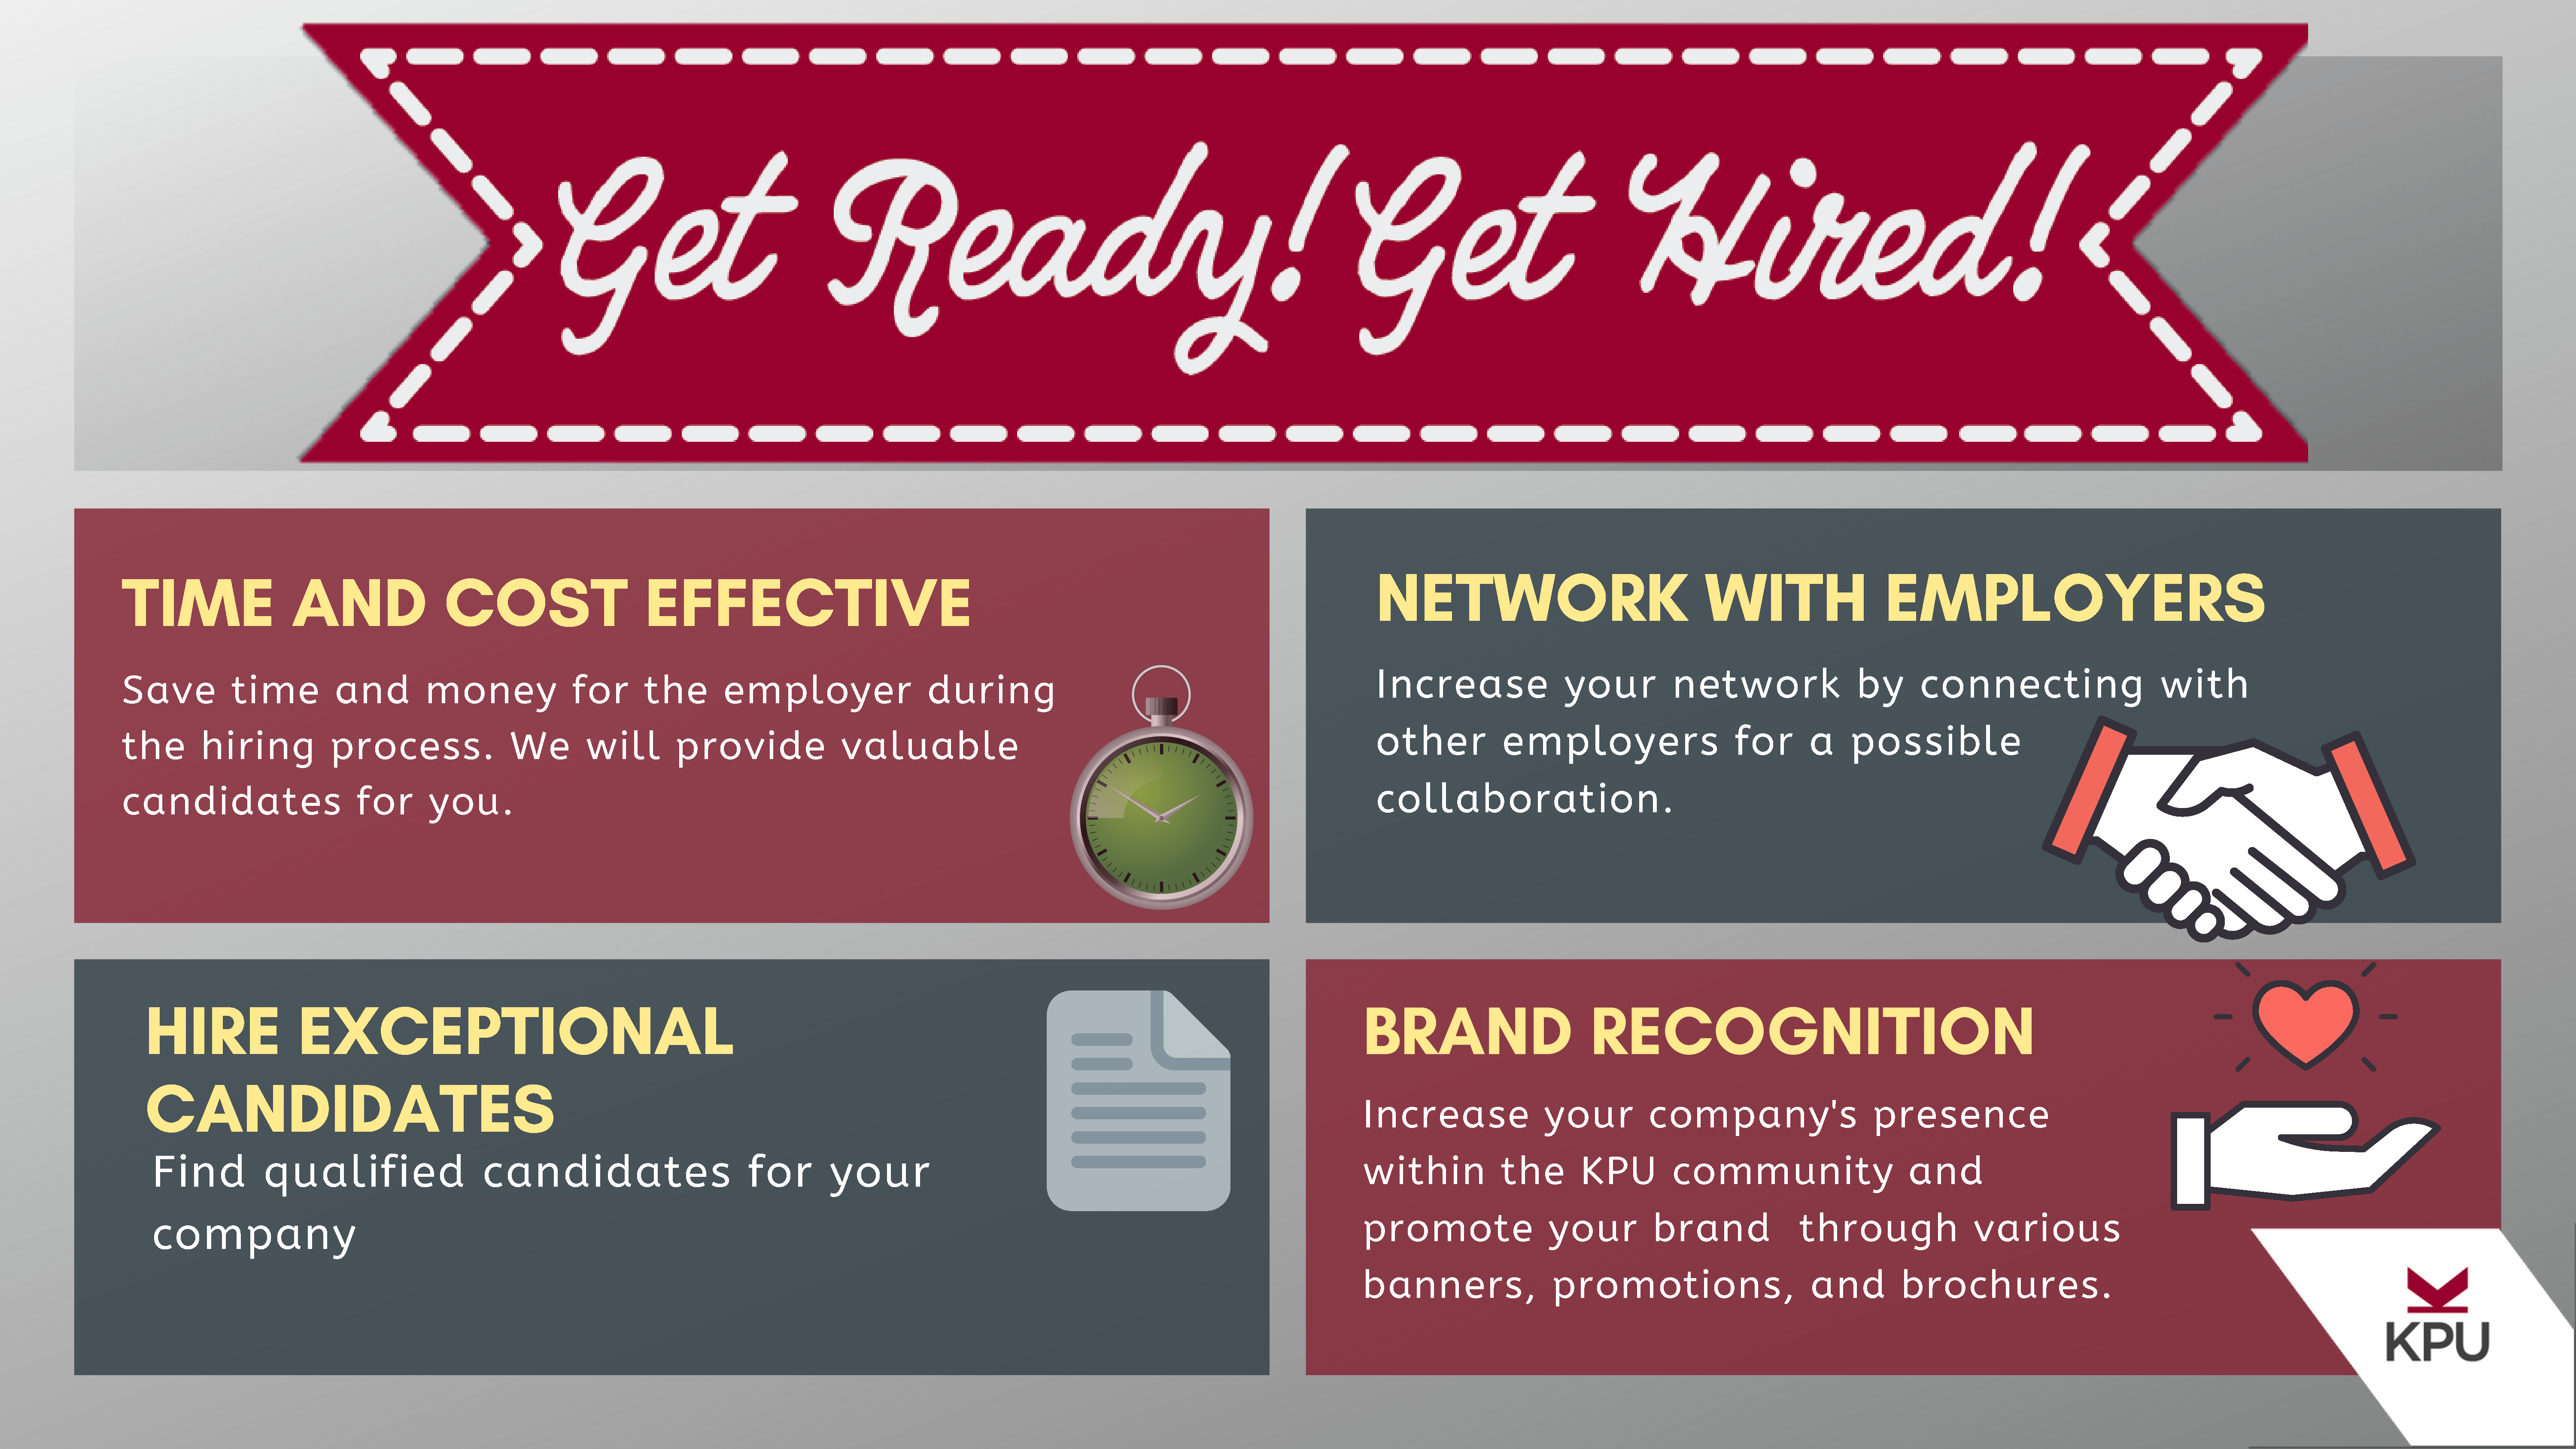 Employer benefits for GRGH